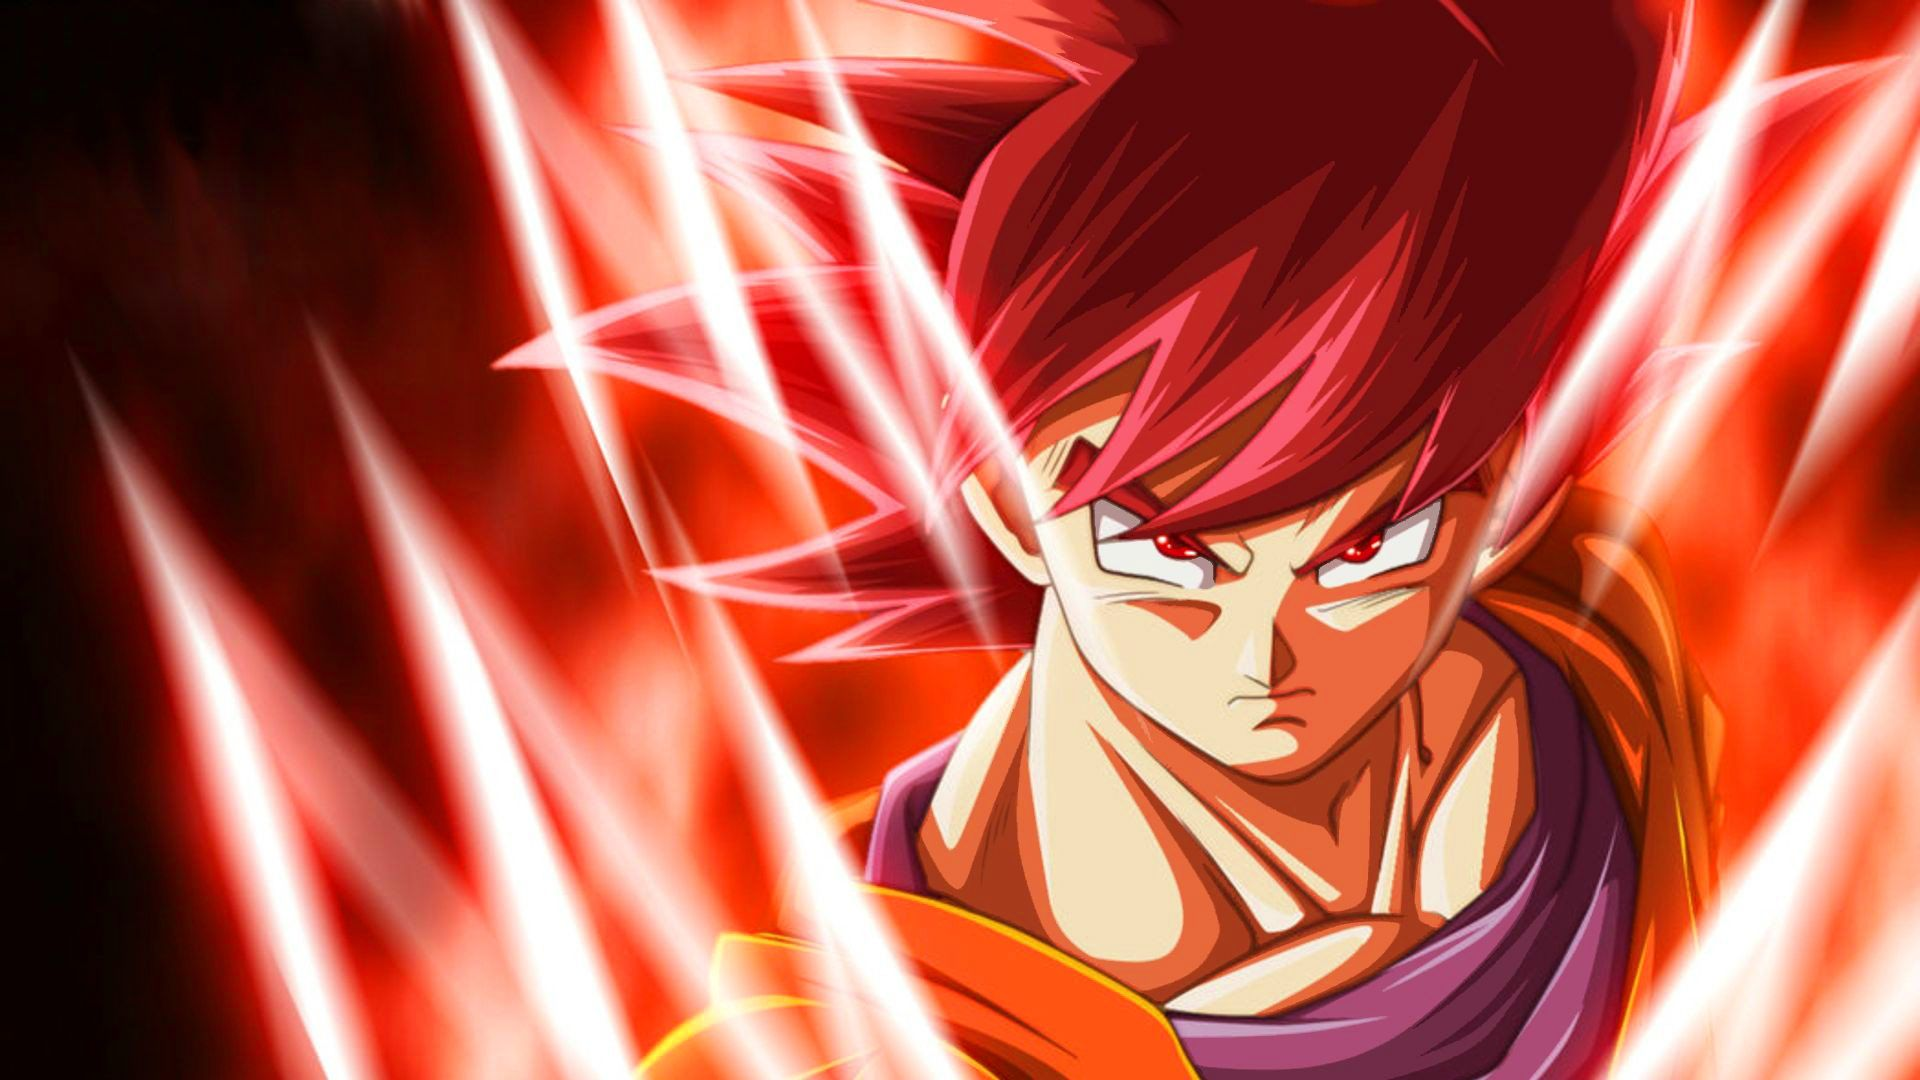 Free Goku Super Saiyan God Wallpapers Goku Super Saiyan God